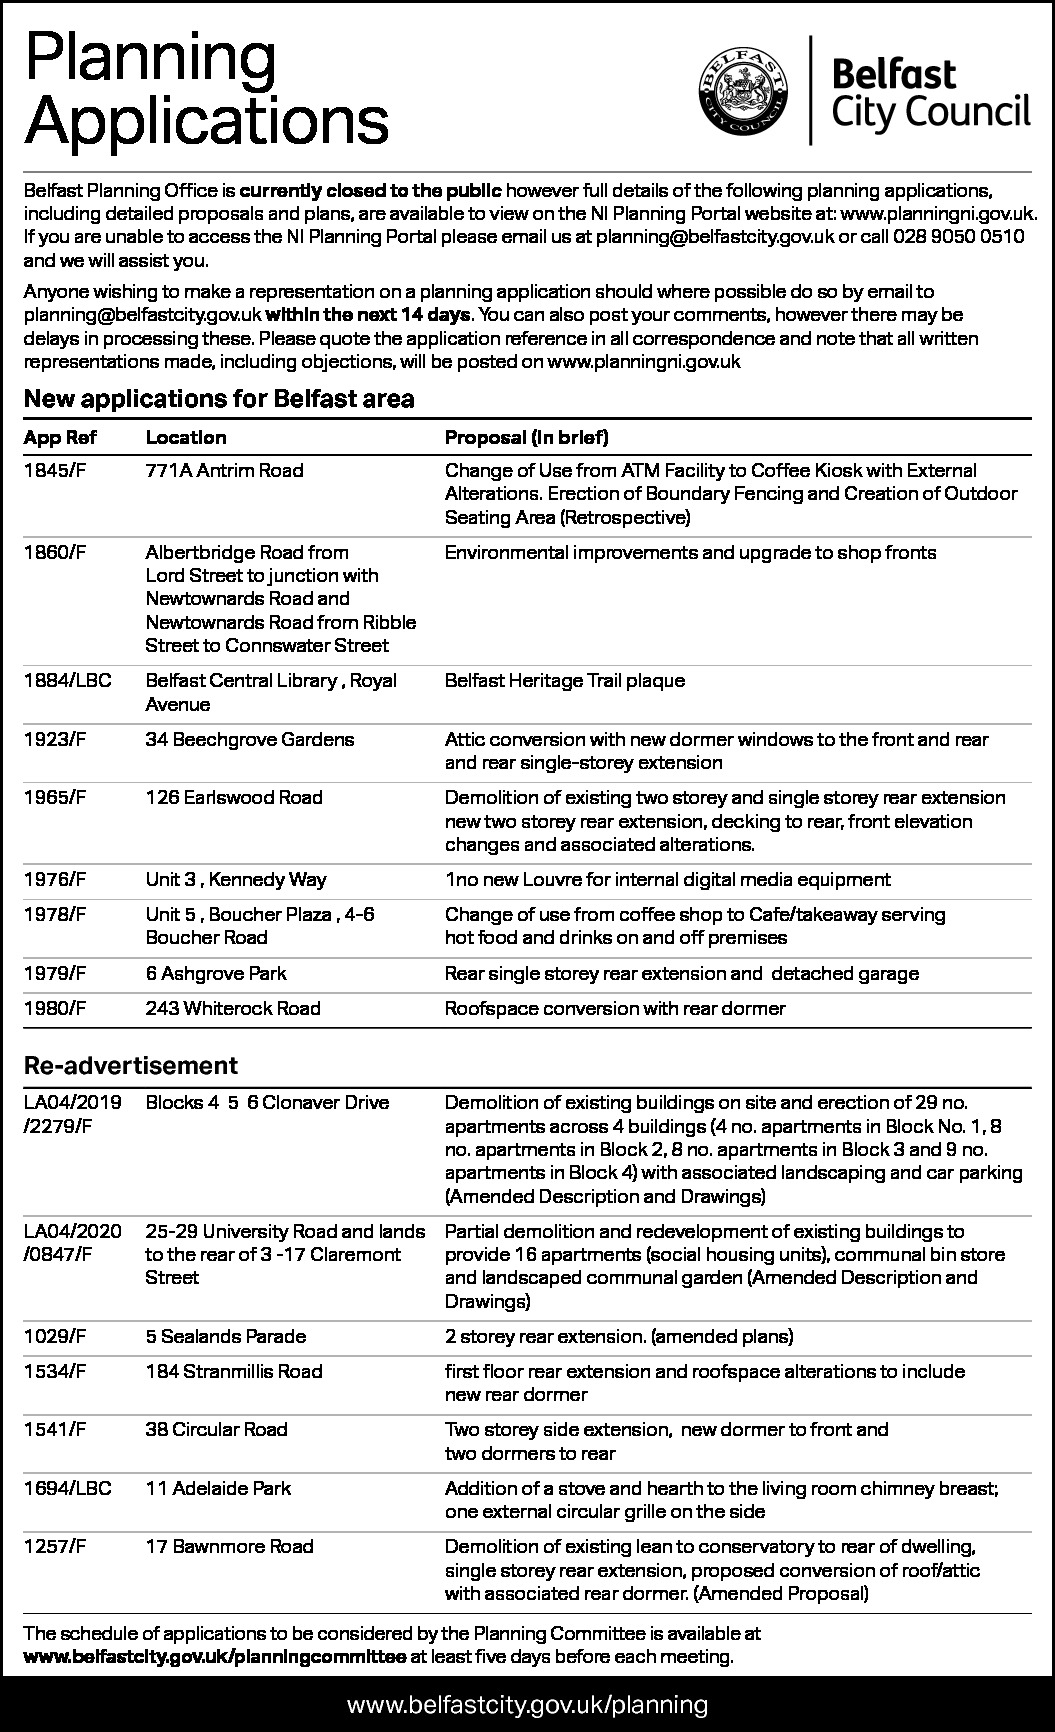 Belfast City Council - Planning Applications